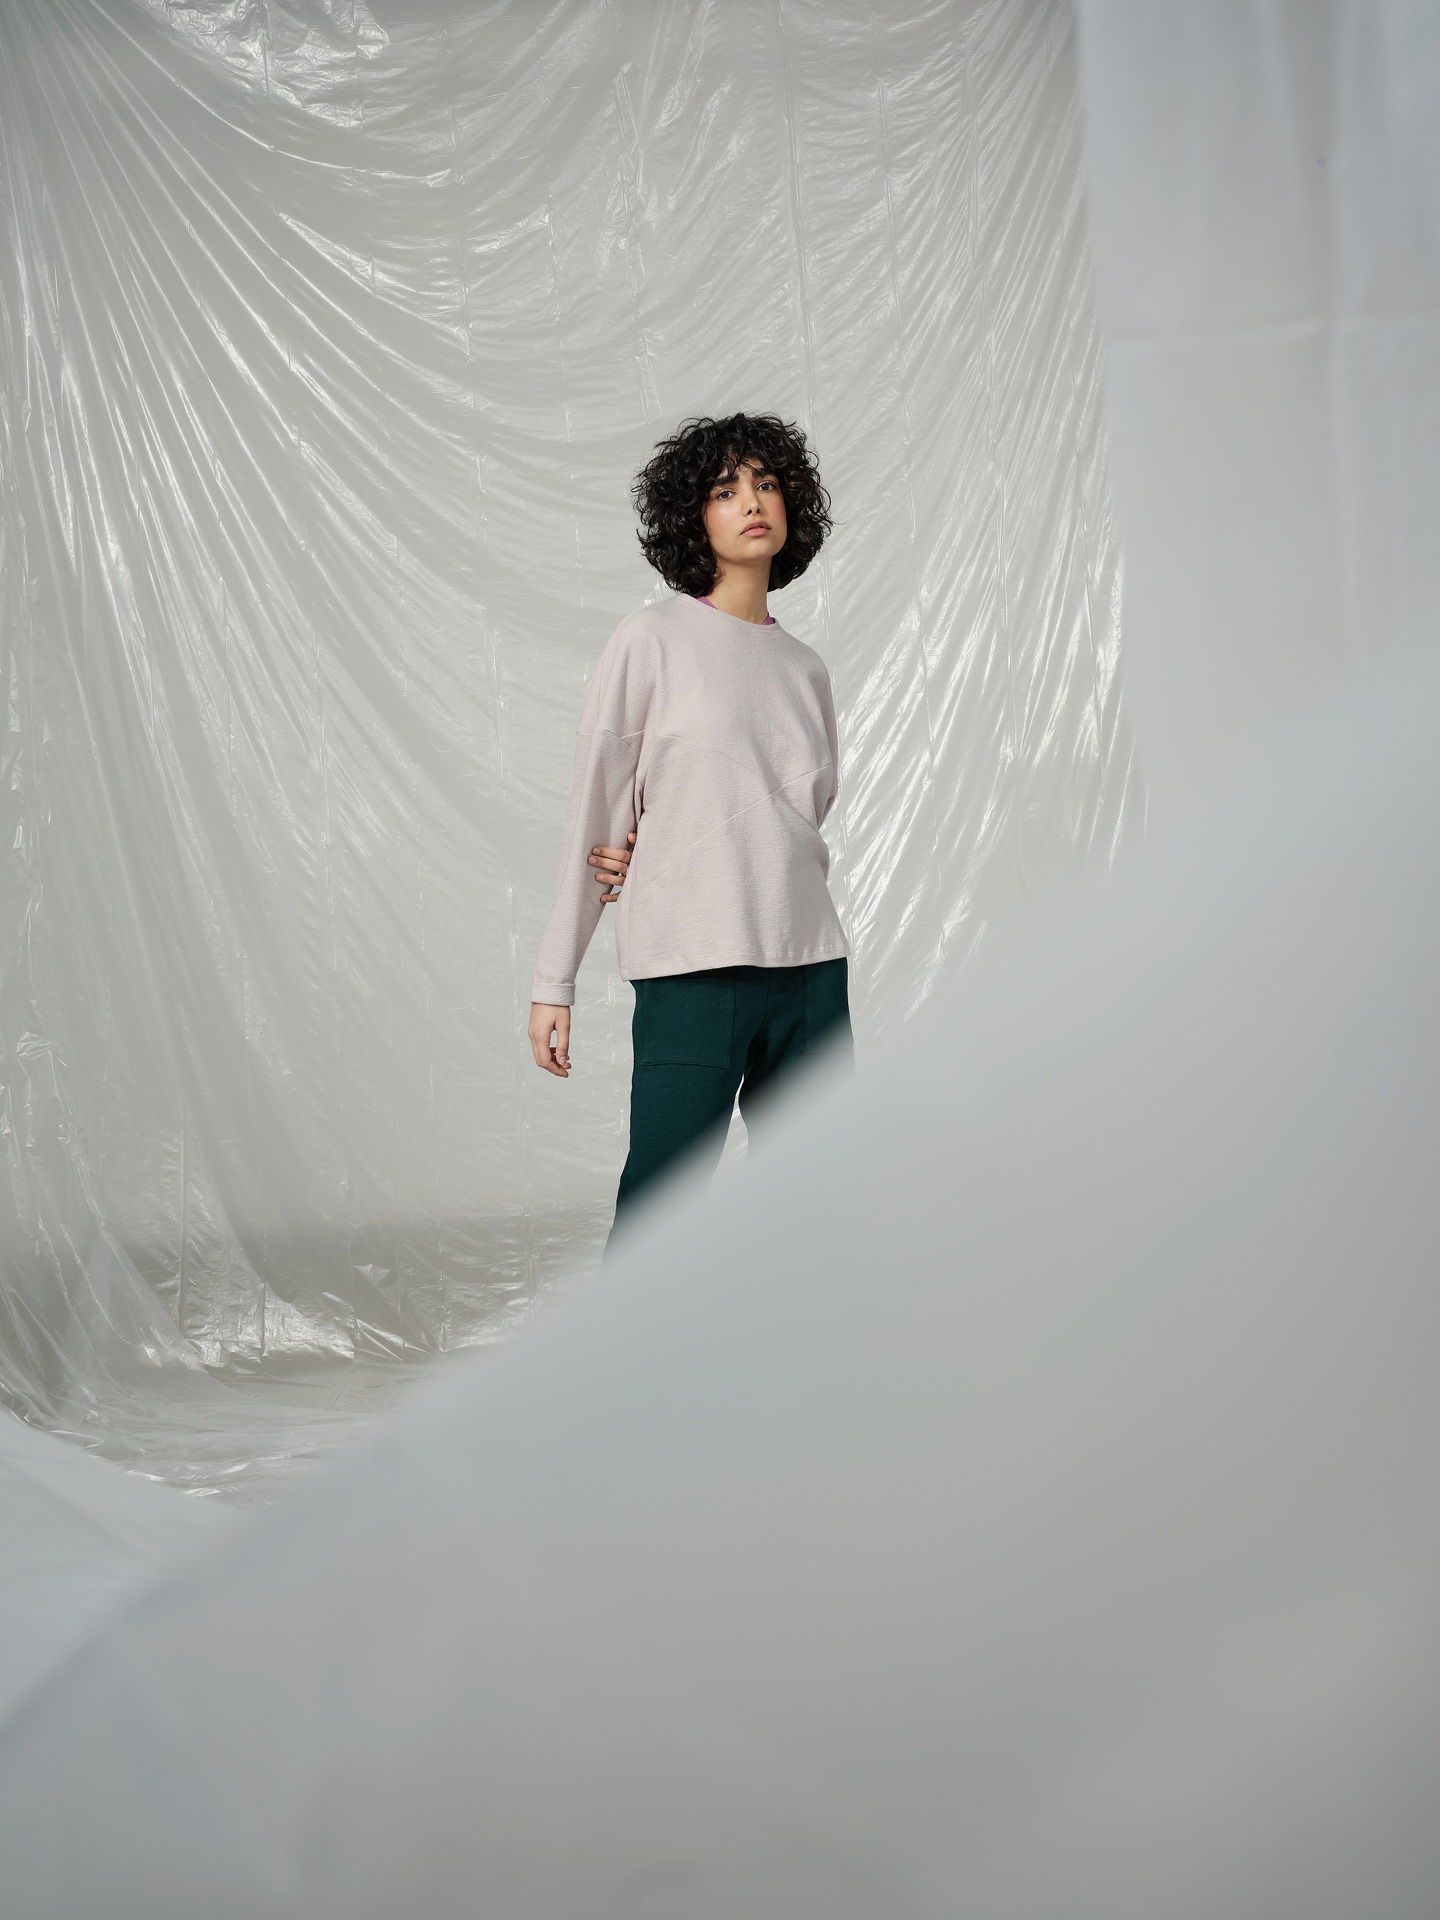 curly haired female model wearing soft pink sweater and dark green pants standing in middle of room covered in plastic construction sheet looking at camera photographed by Maxyme G Delisle with artistic direction and styling by Studio TB